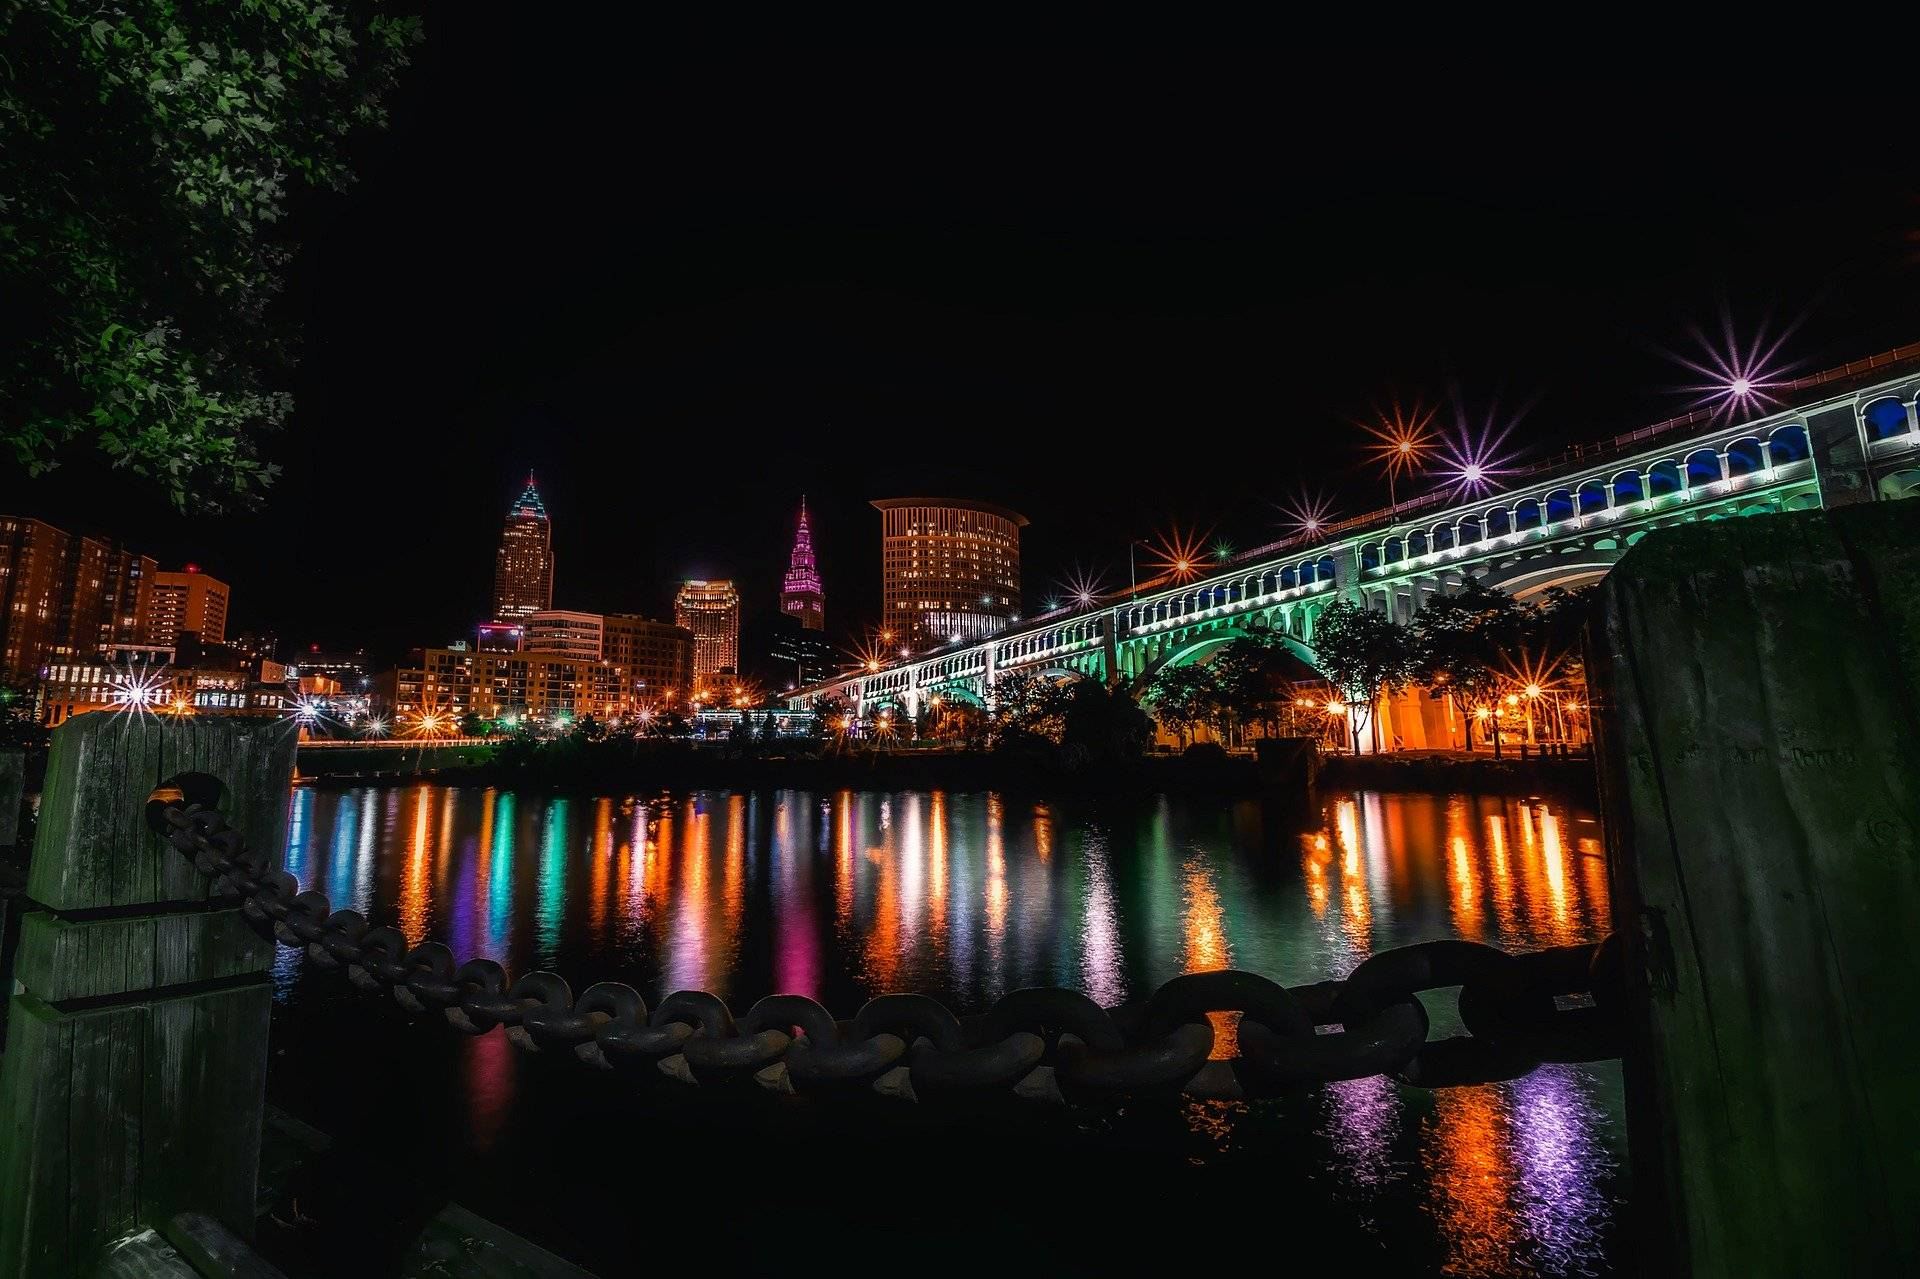 Cleveland at night by the harbor